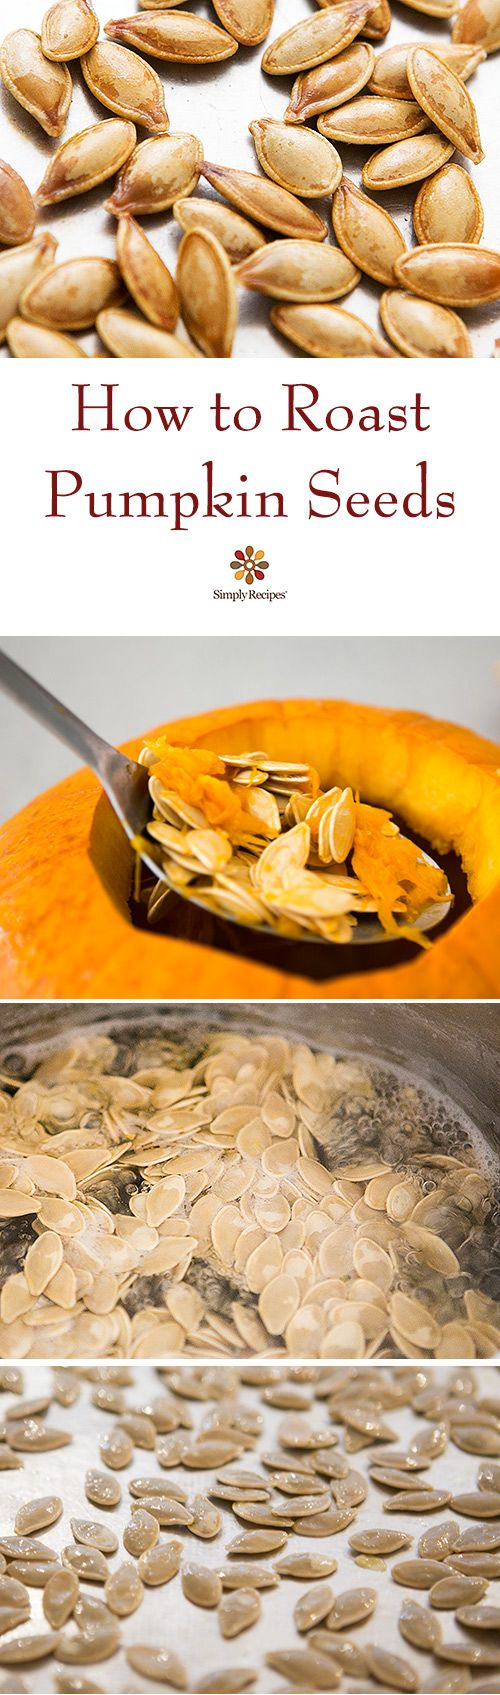 This is the best way I've found to roast pumpkin seeds, so the salt penetrates all the way to the inside seed. Roasted pumpkin seeds are the perfect fall snack—easy, crunchy, and irresistible! On SimplyRecipes.com #vegan #lowcarb #glutenfree #paleo